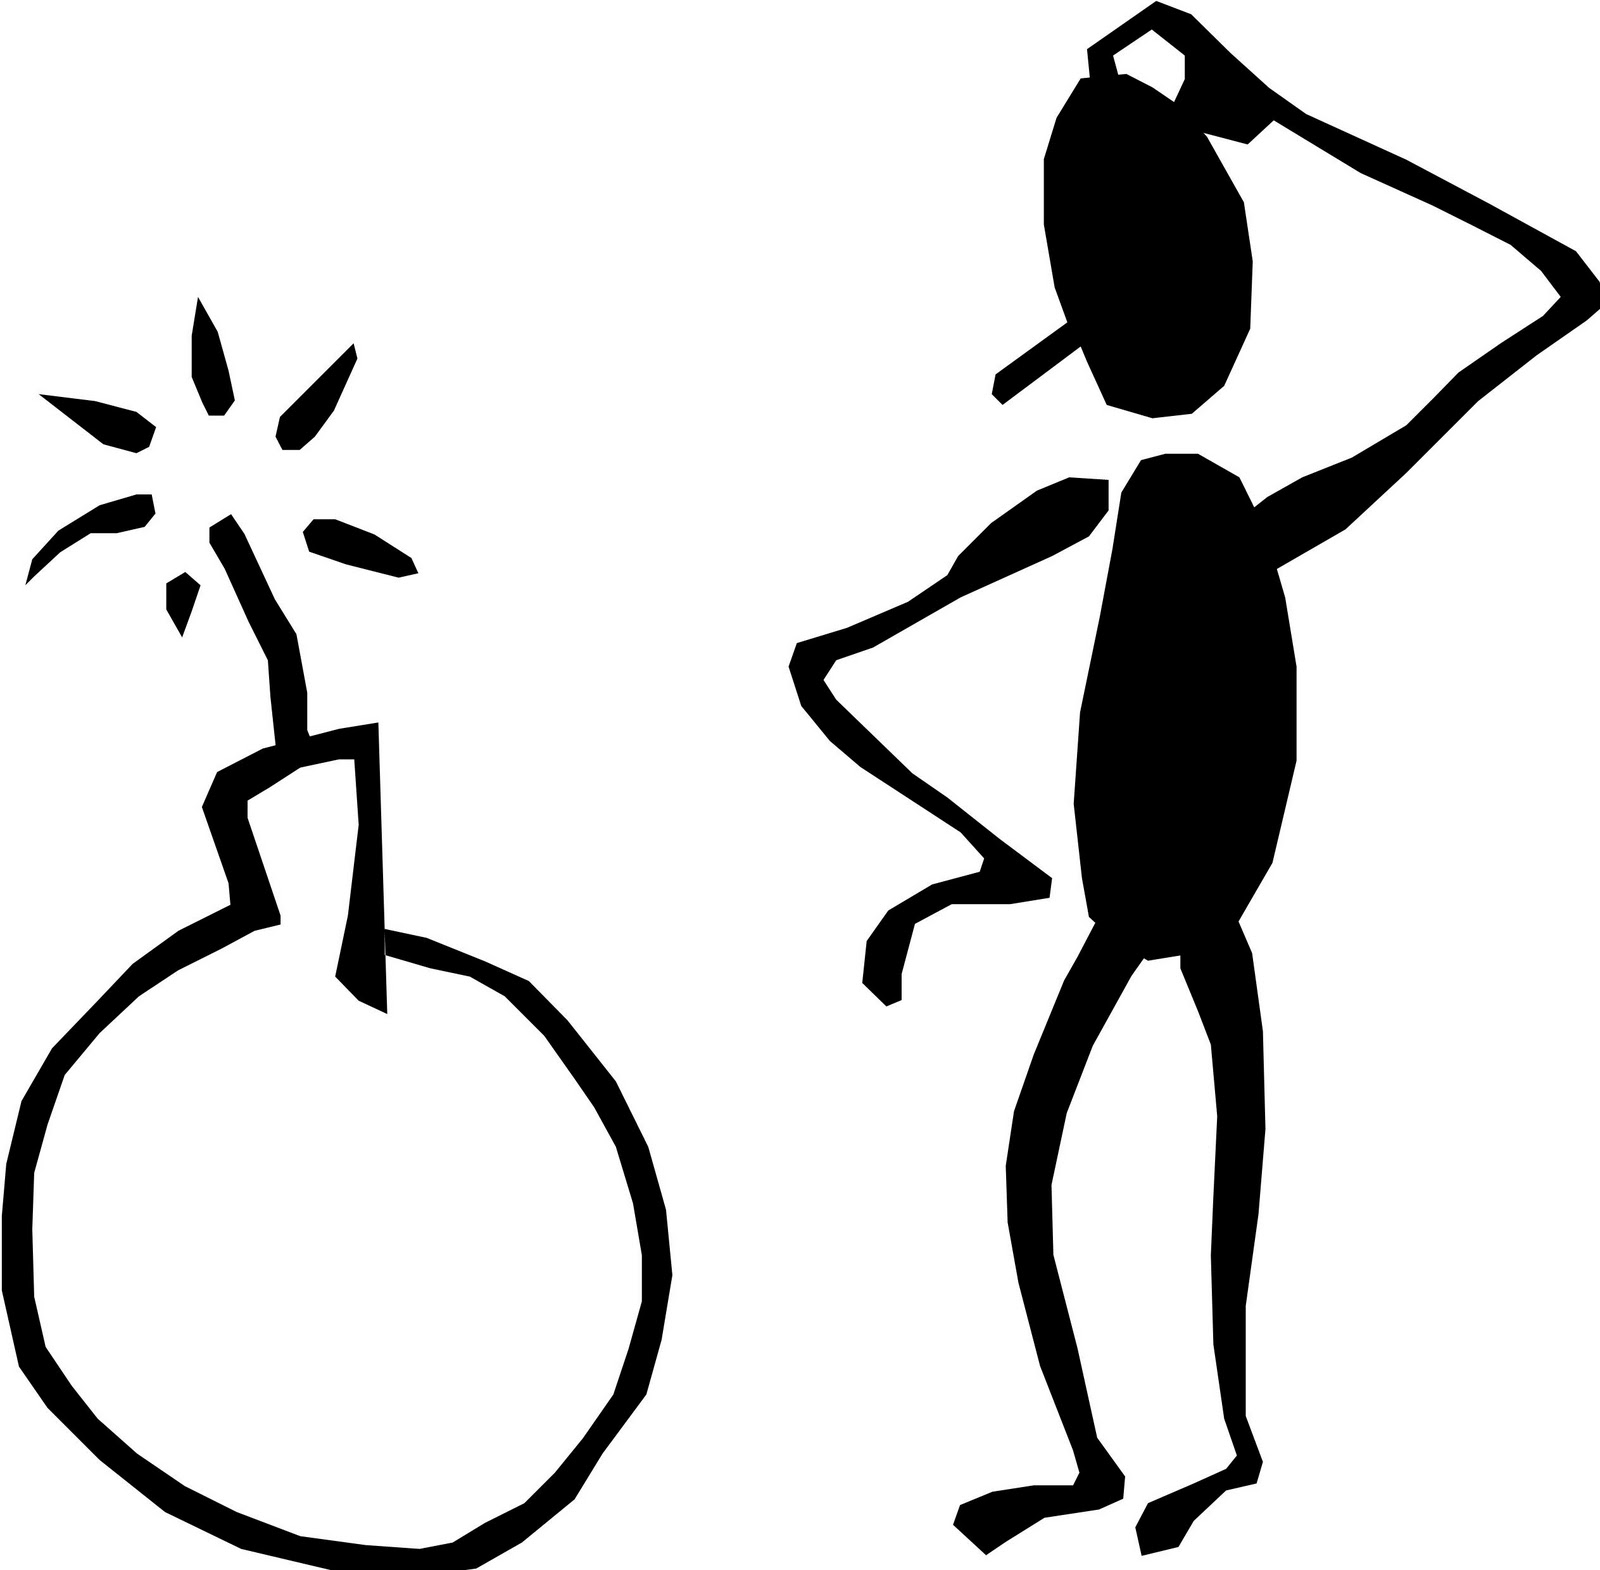 1600x1570 Thinking Stick Figure Clipart Clipartix